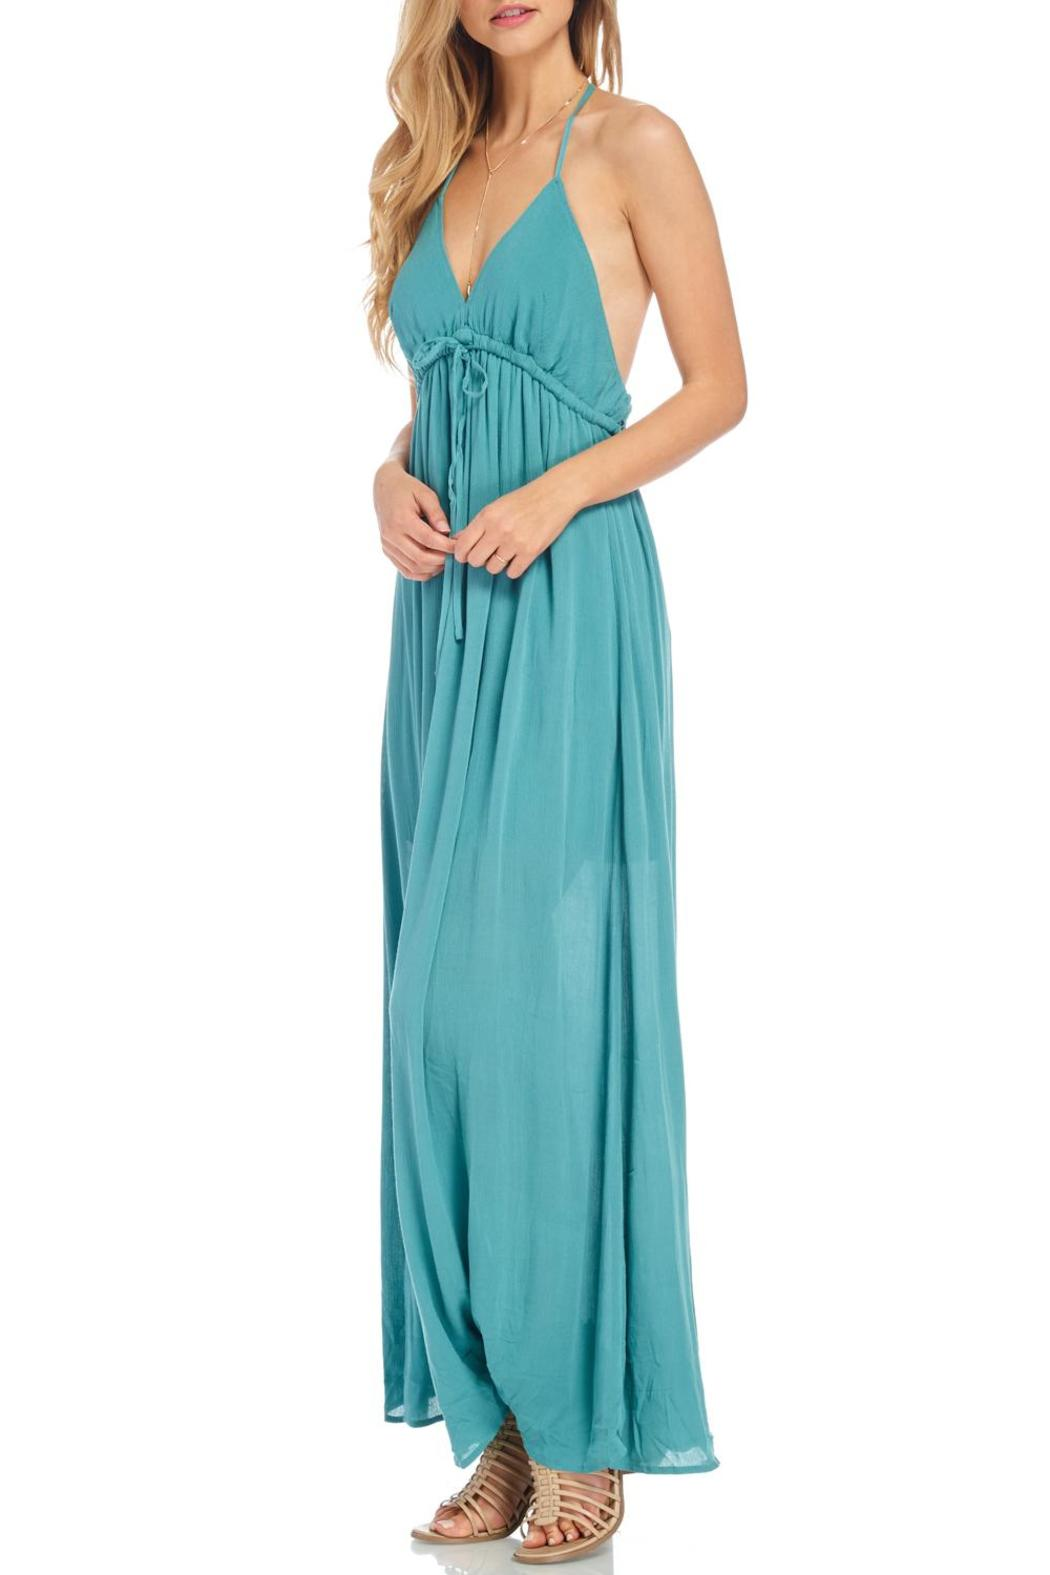 HYFVE Turquoise Maxi Dress from Wisconsin by Apricot Lane ...